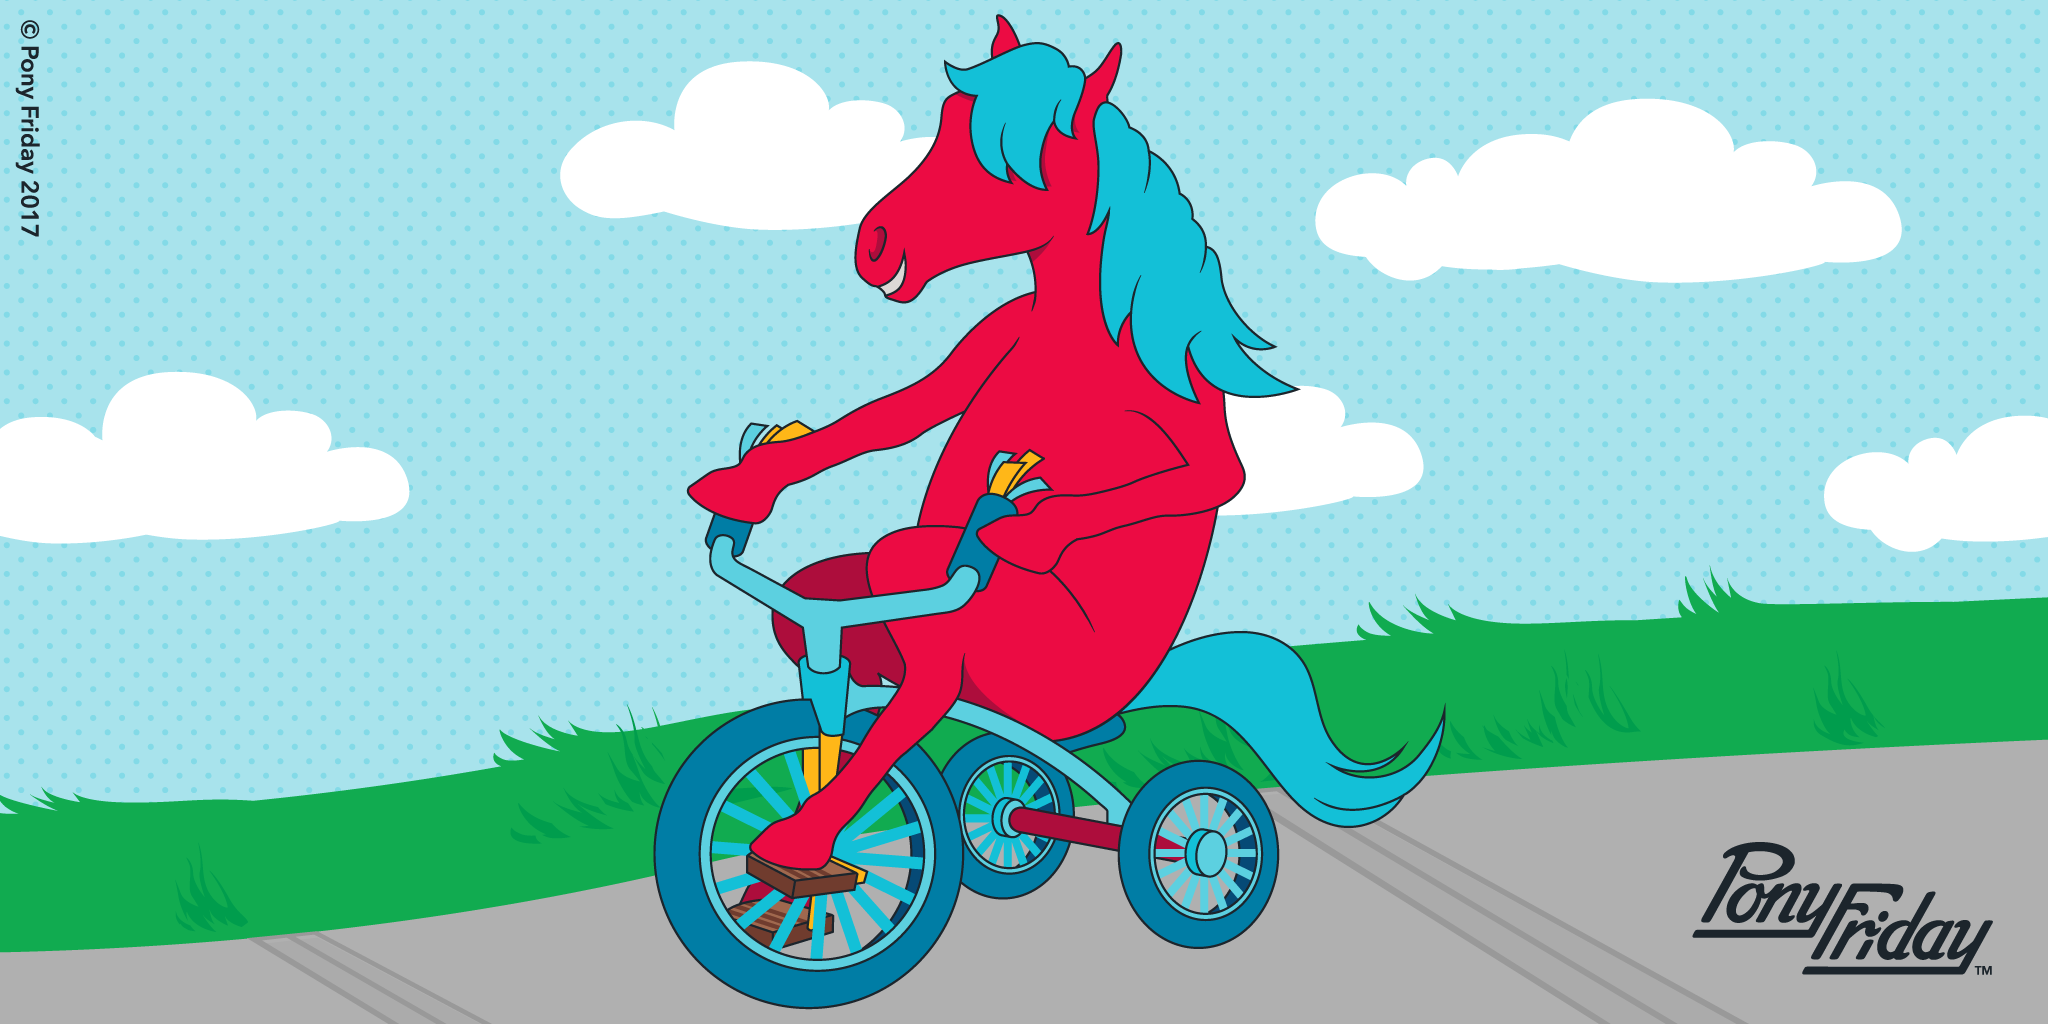 Pony-Friday-Bike-Tricycle-Pedal-Fun-Joy-Going-Places-Kicks-Blog-Header-Image.png